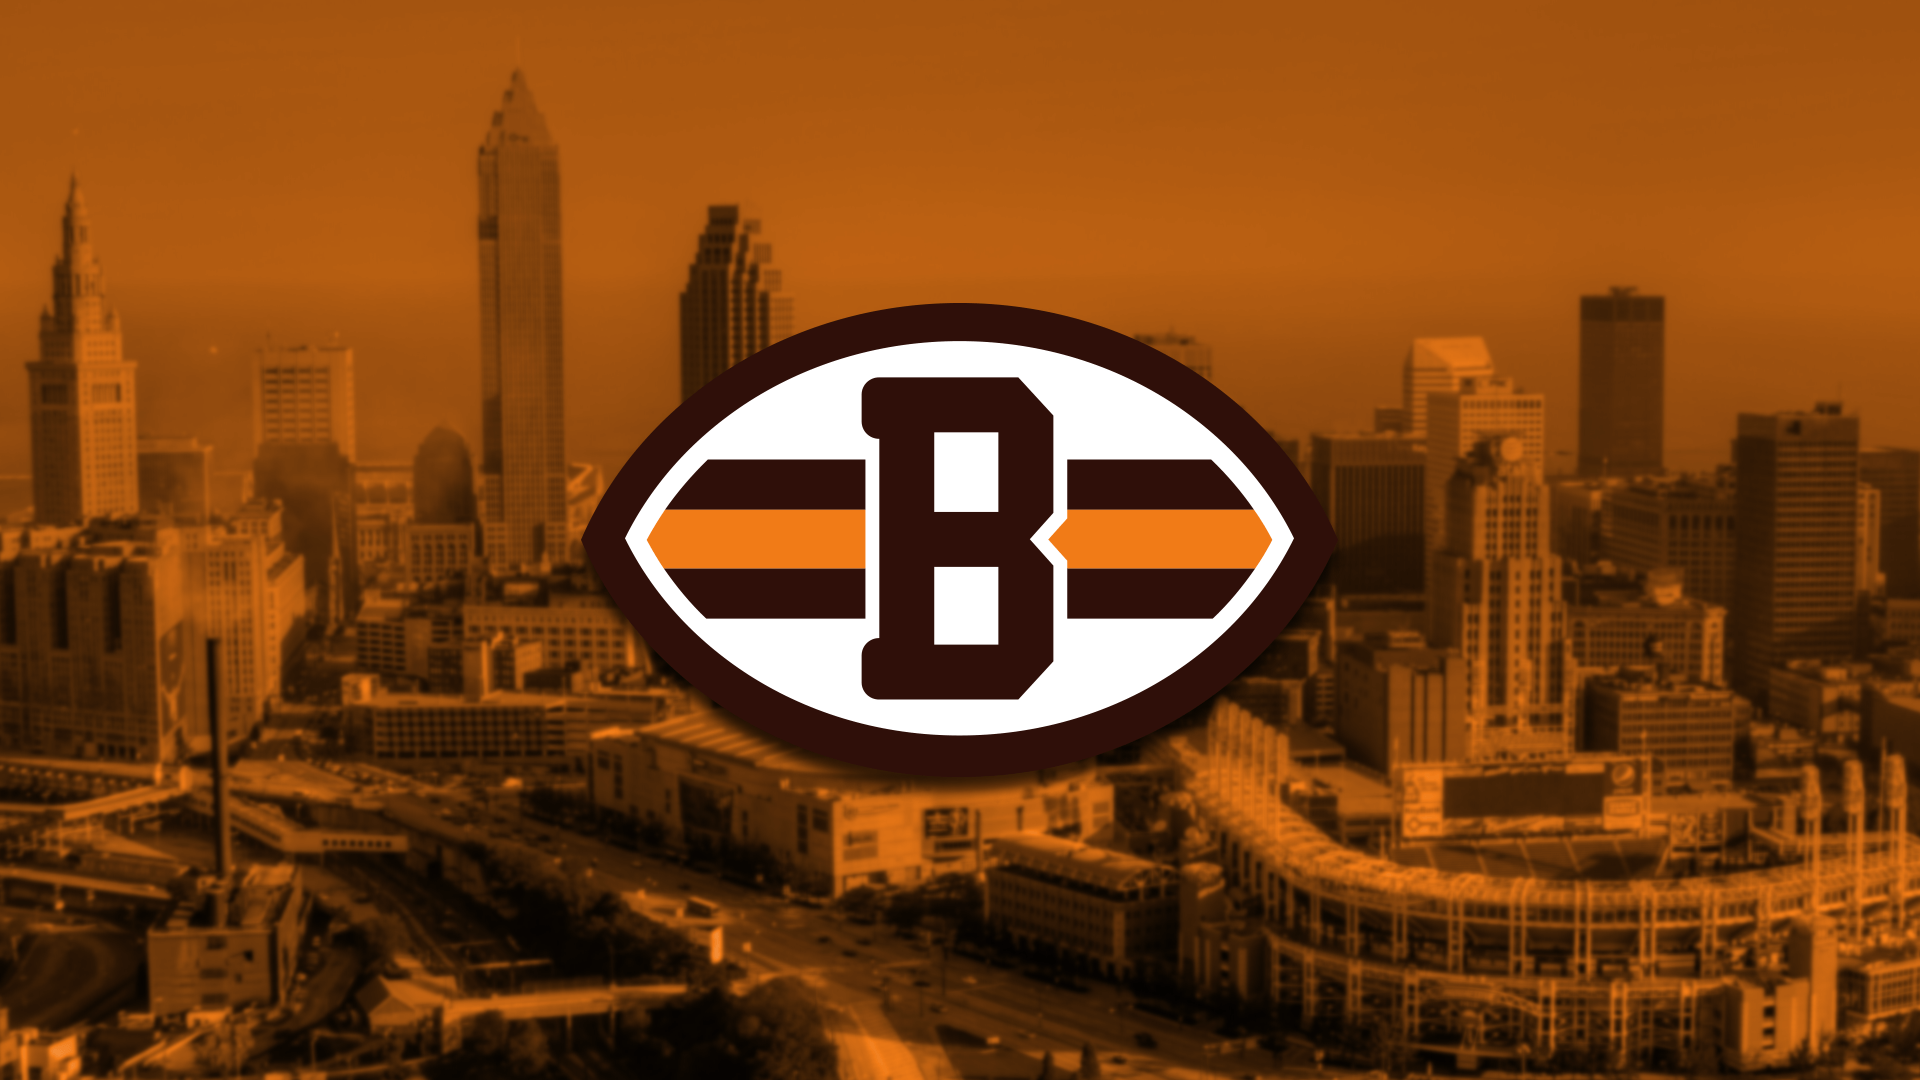 Cleveland Browns 2018 Wallpapers - Wallpaper Cave